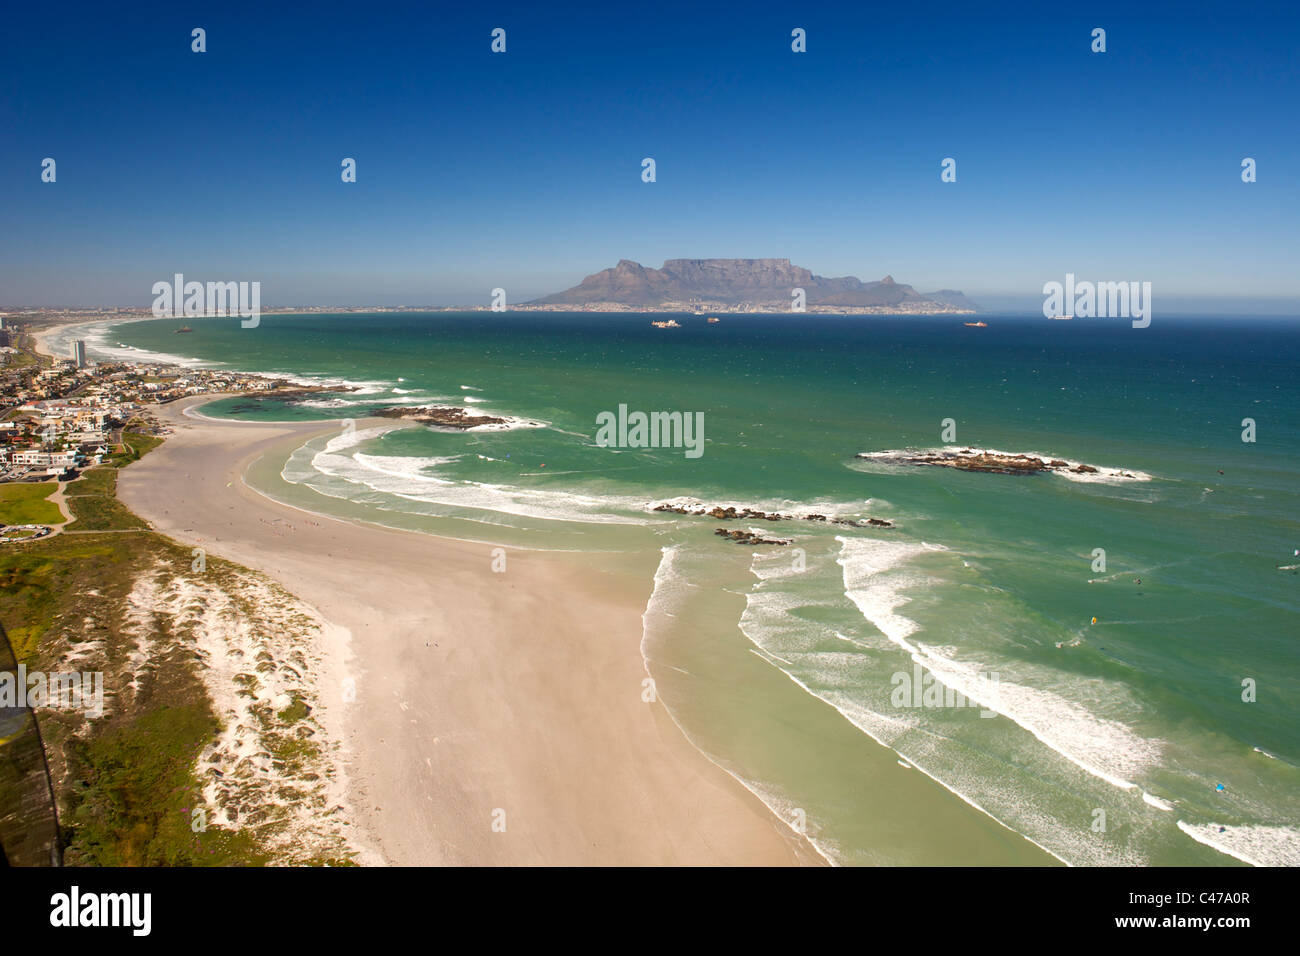 Aerial view looking south along the west coast north of Cape Town in South Africa. Stock Photo